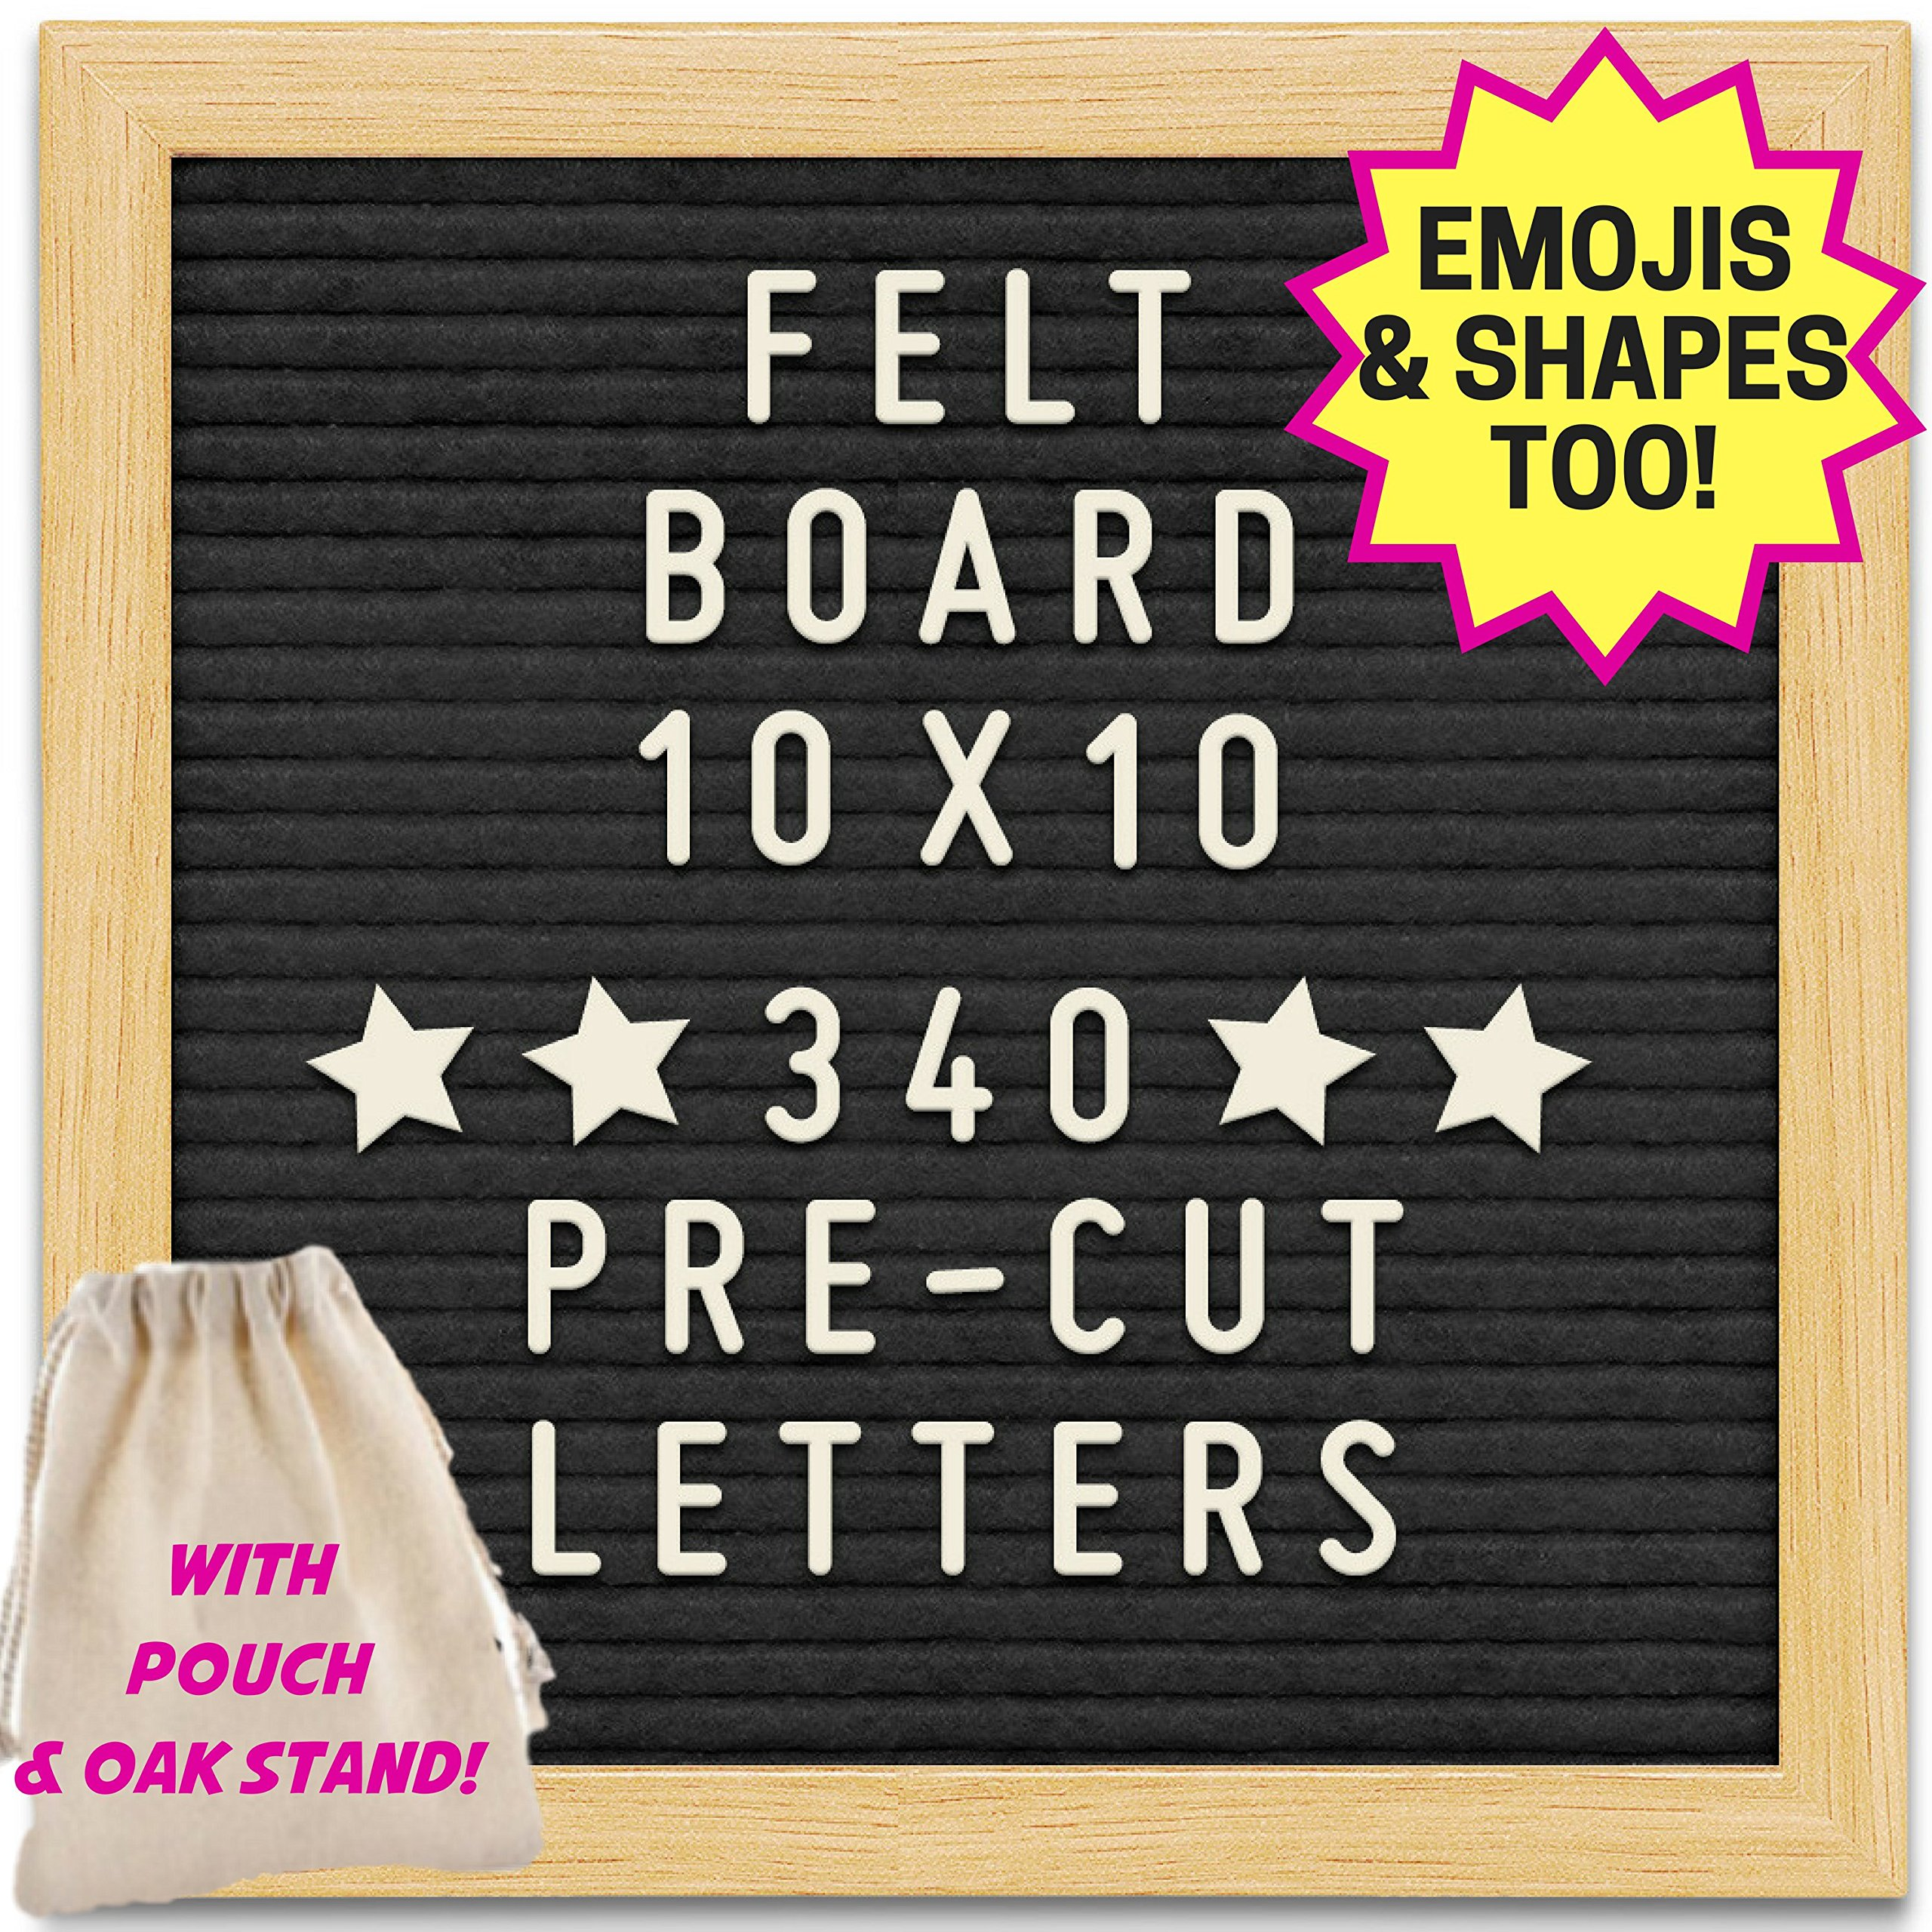 Black Felt Letter Board with 10X10 Wooden Frame and Stand. Includes 340 Changeable Pre-Cut Letters, Numbers & Emojis Separated in Canvas Bag - Best for Sharing Your Message.